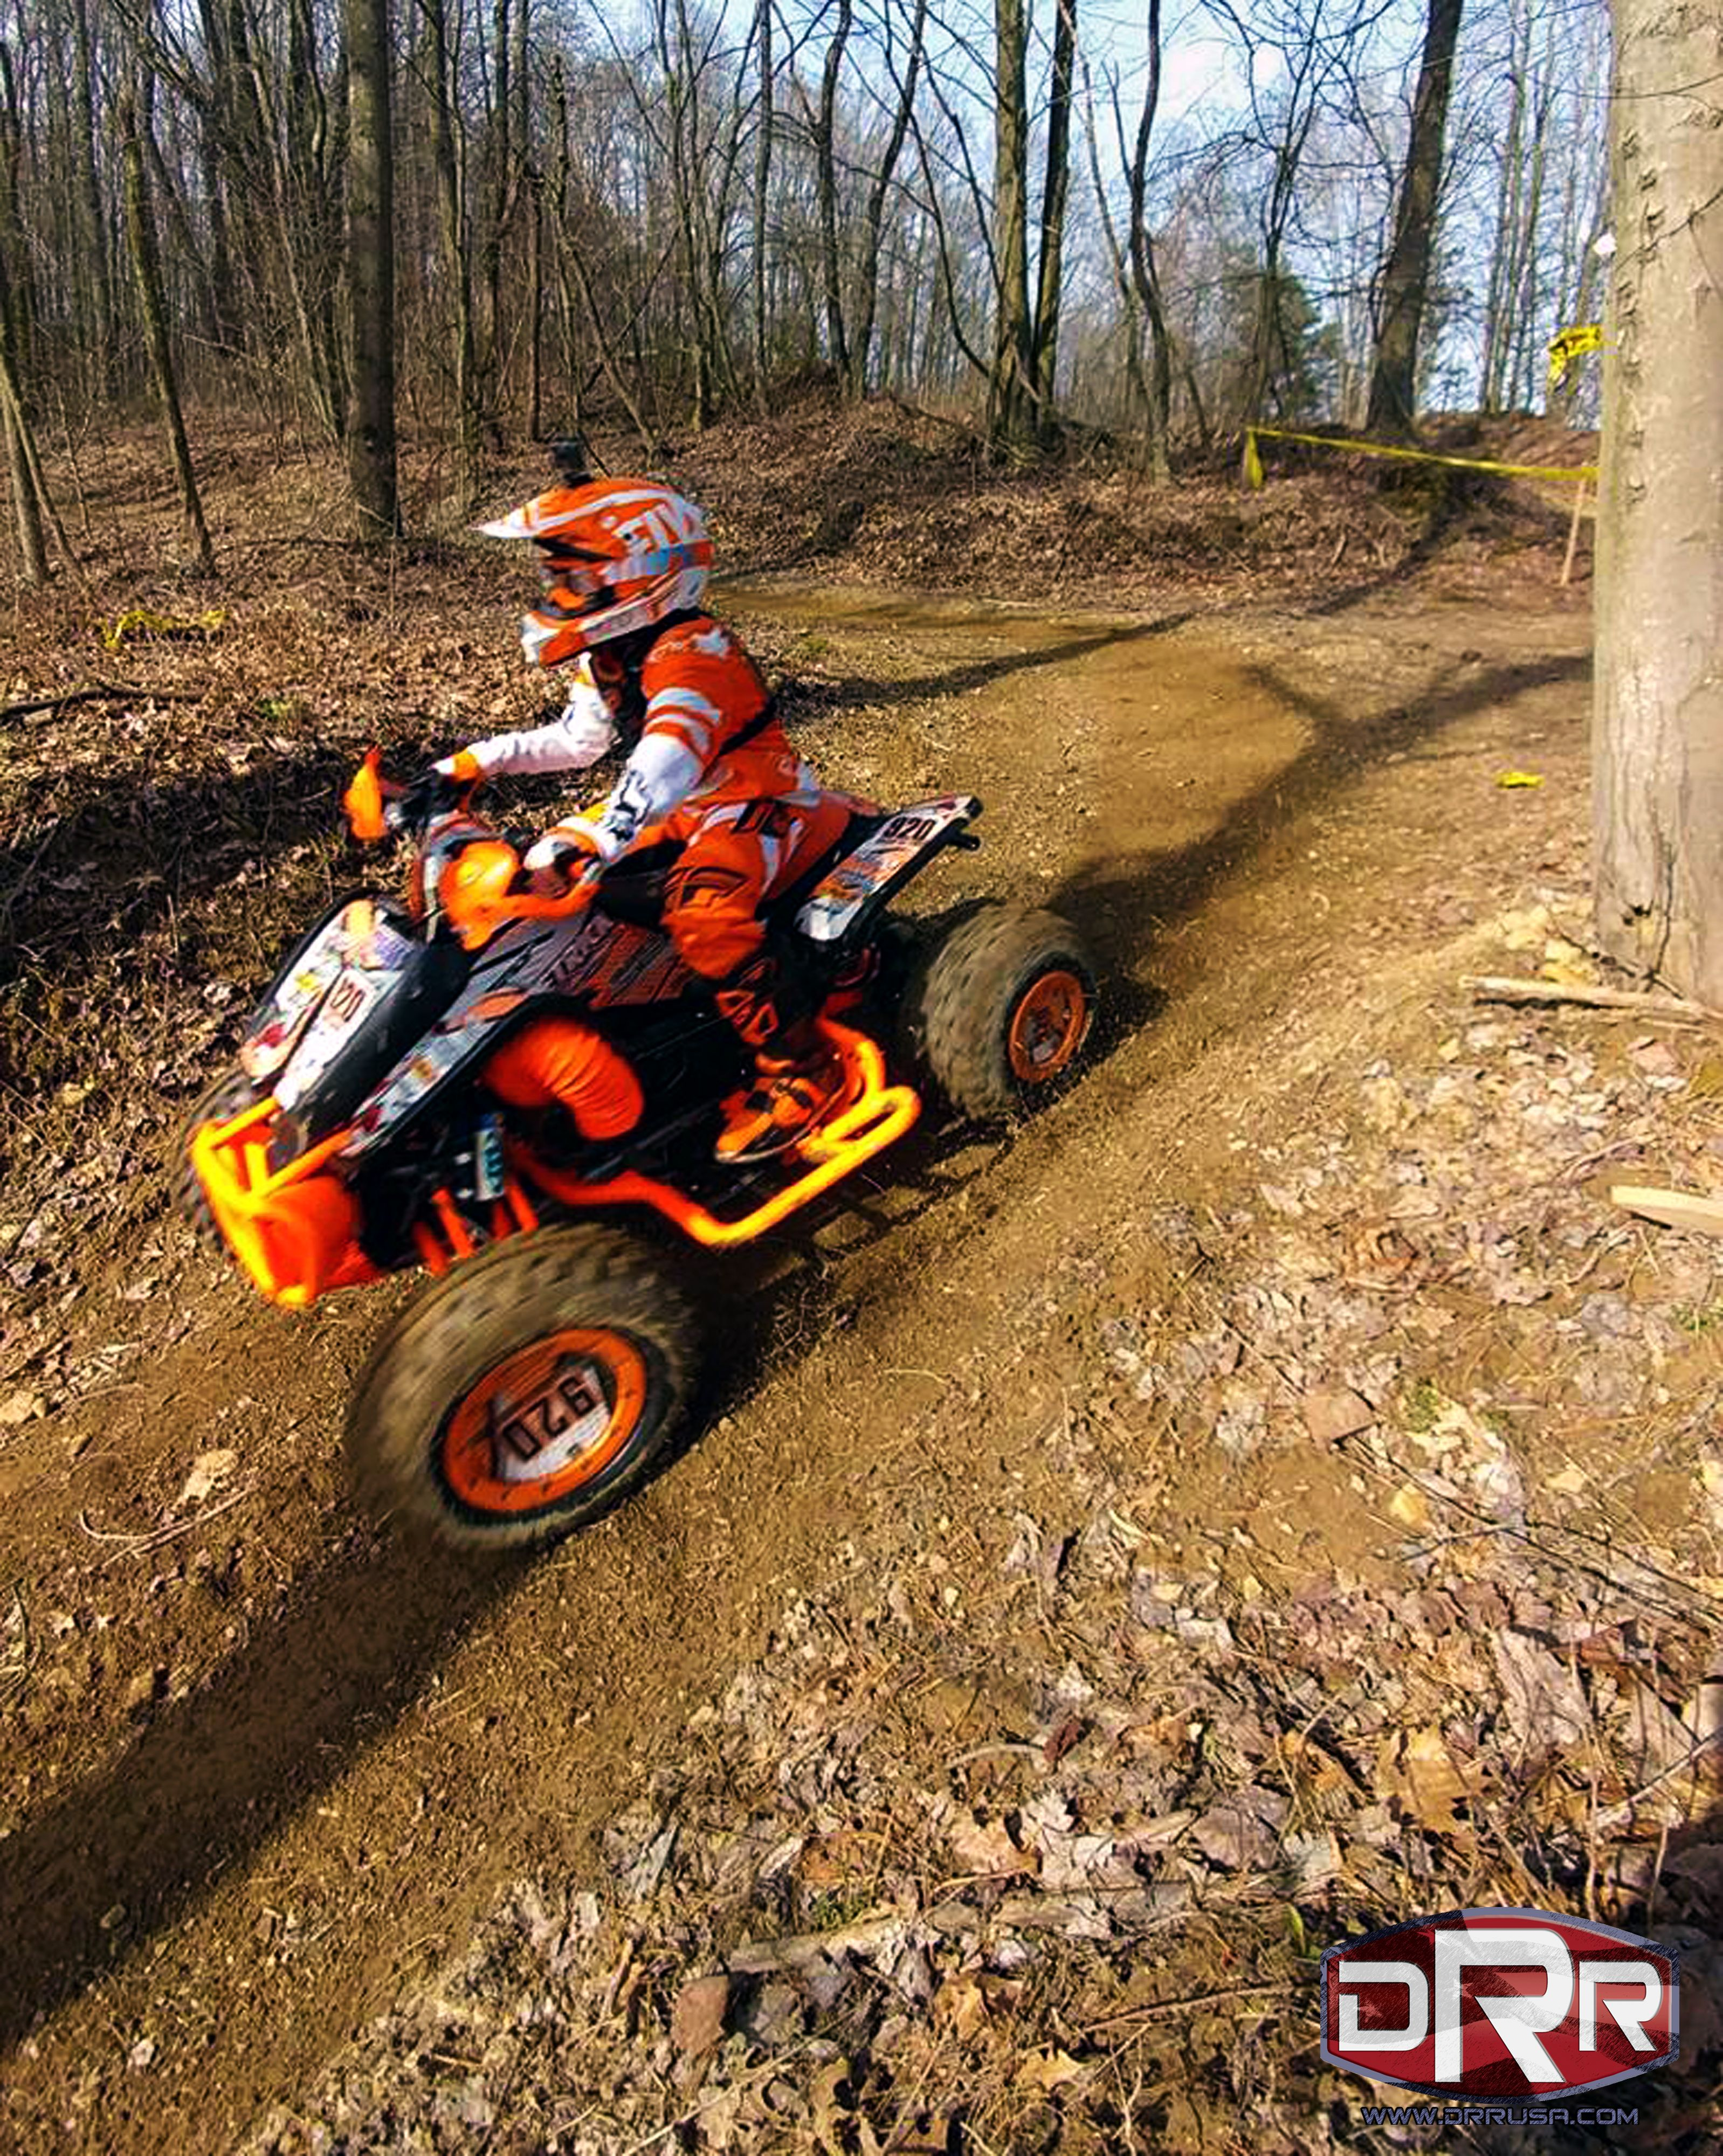 caiden hays at eroc round 1 crow canyon riding his drr drx 90cc atv mod placed 1st overall  [ 3196 x 4000 Pixel ]